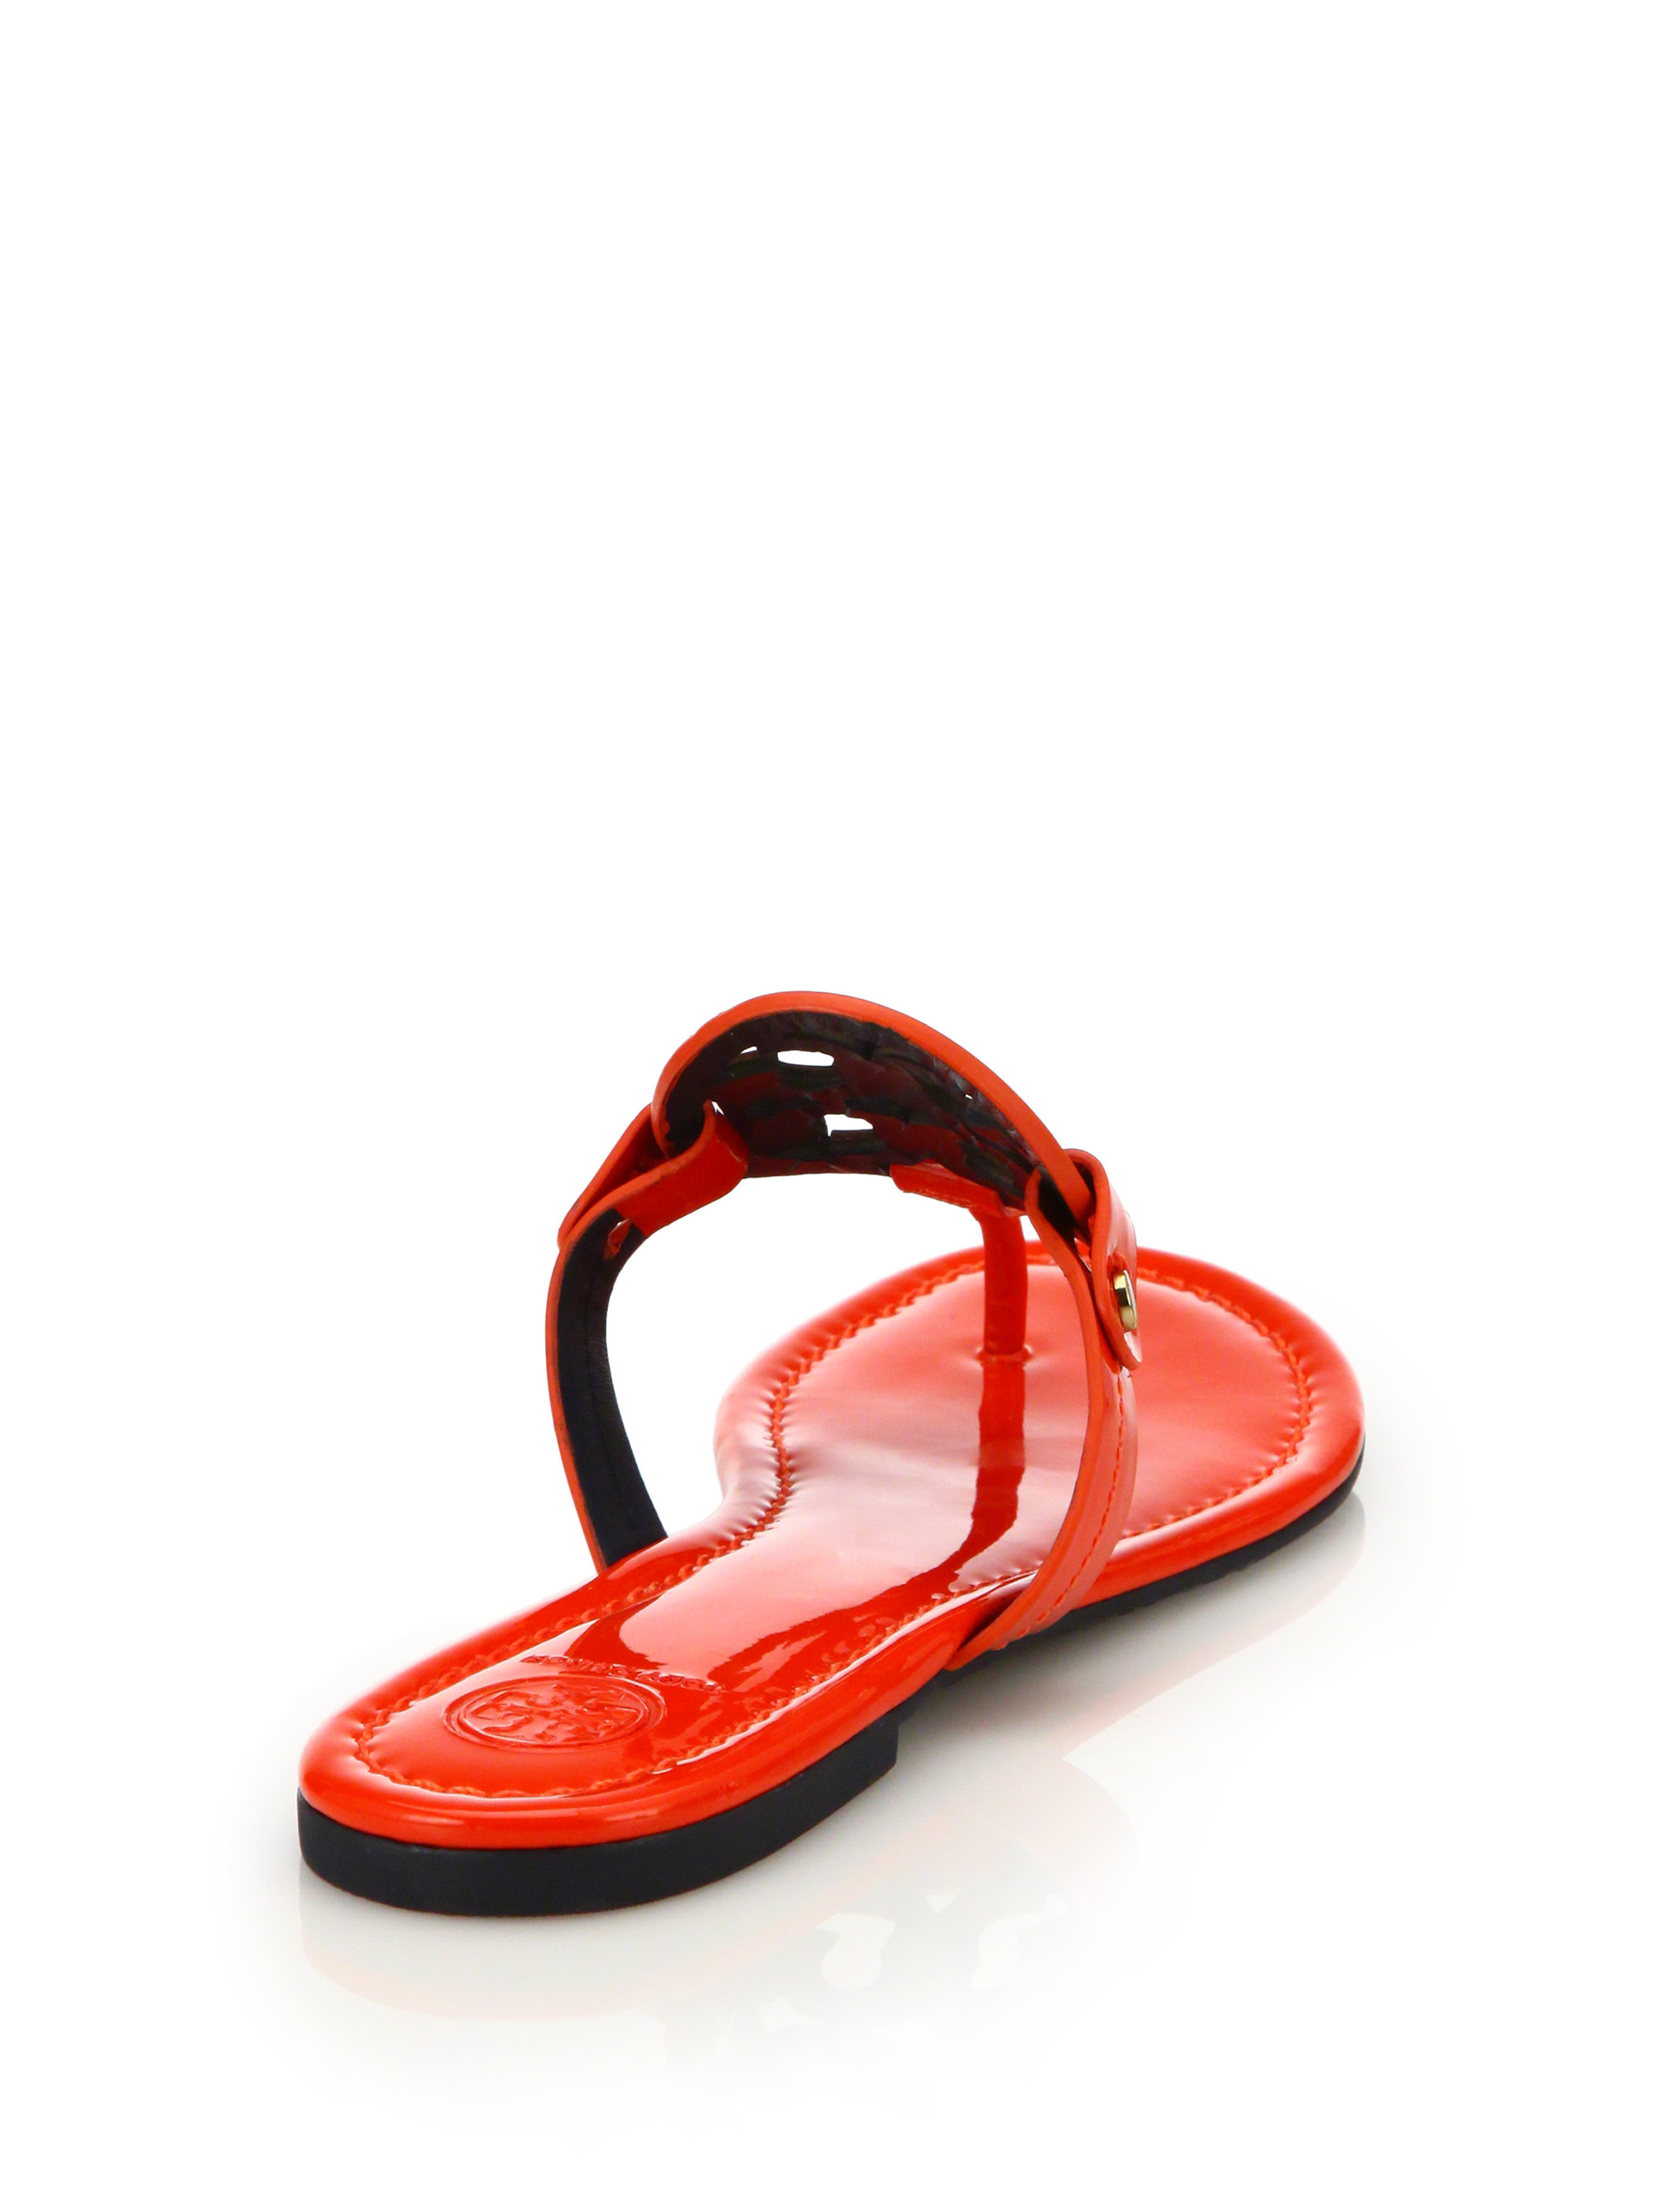 5dca2f4d763f Lyst - Tory Burch Miller Patent Leather Logo Thong Sandals in Orange